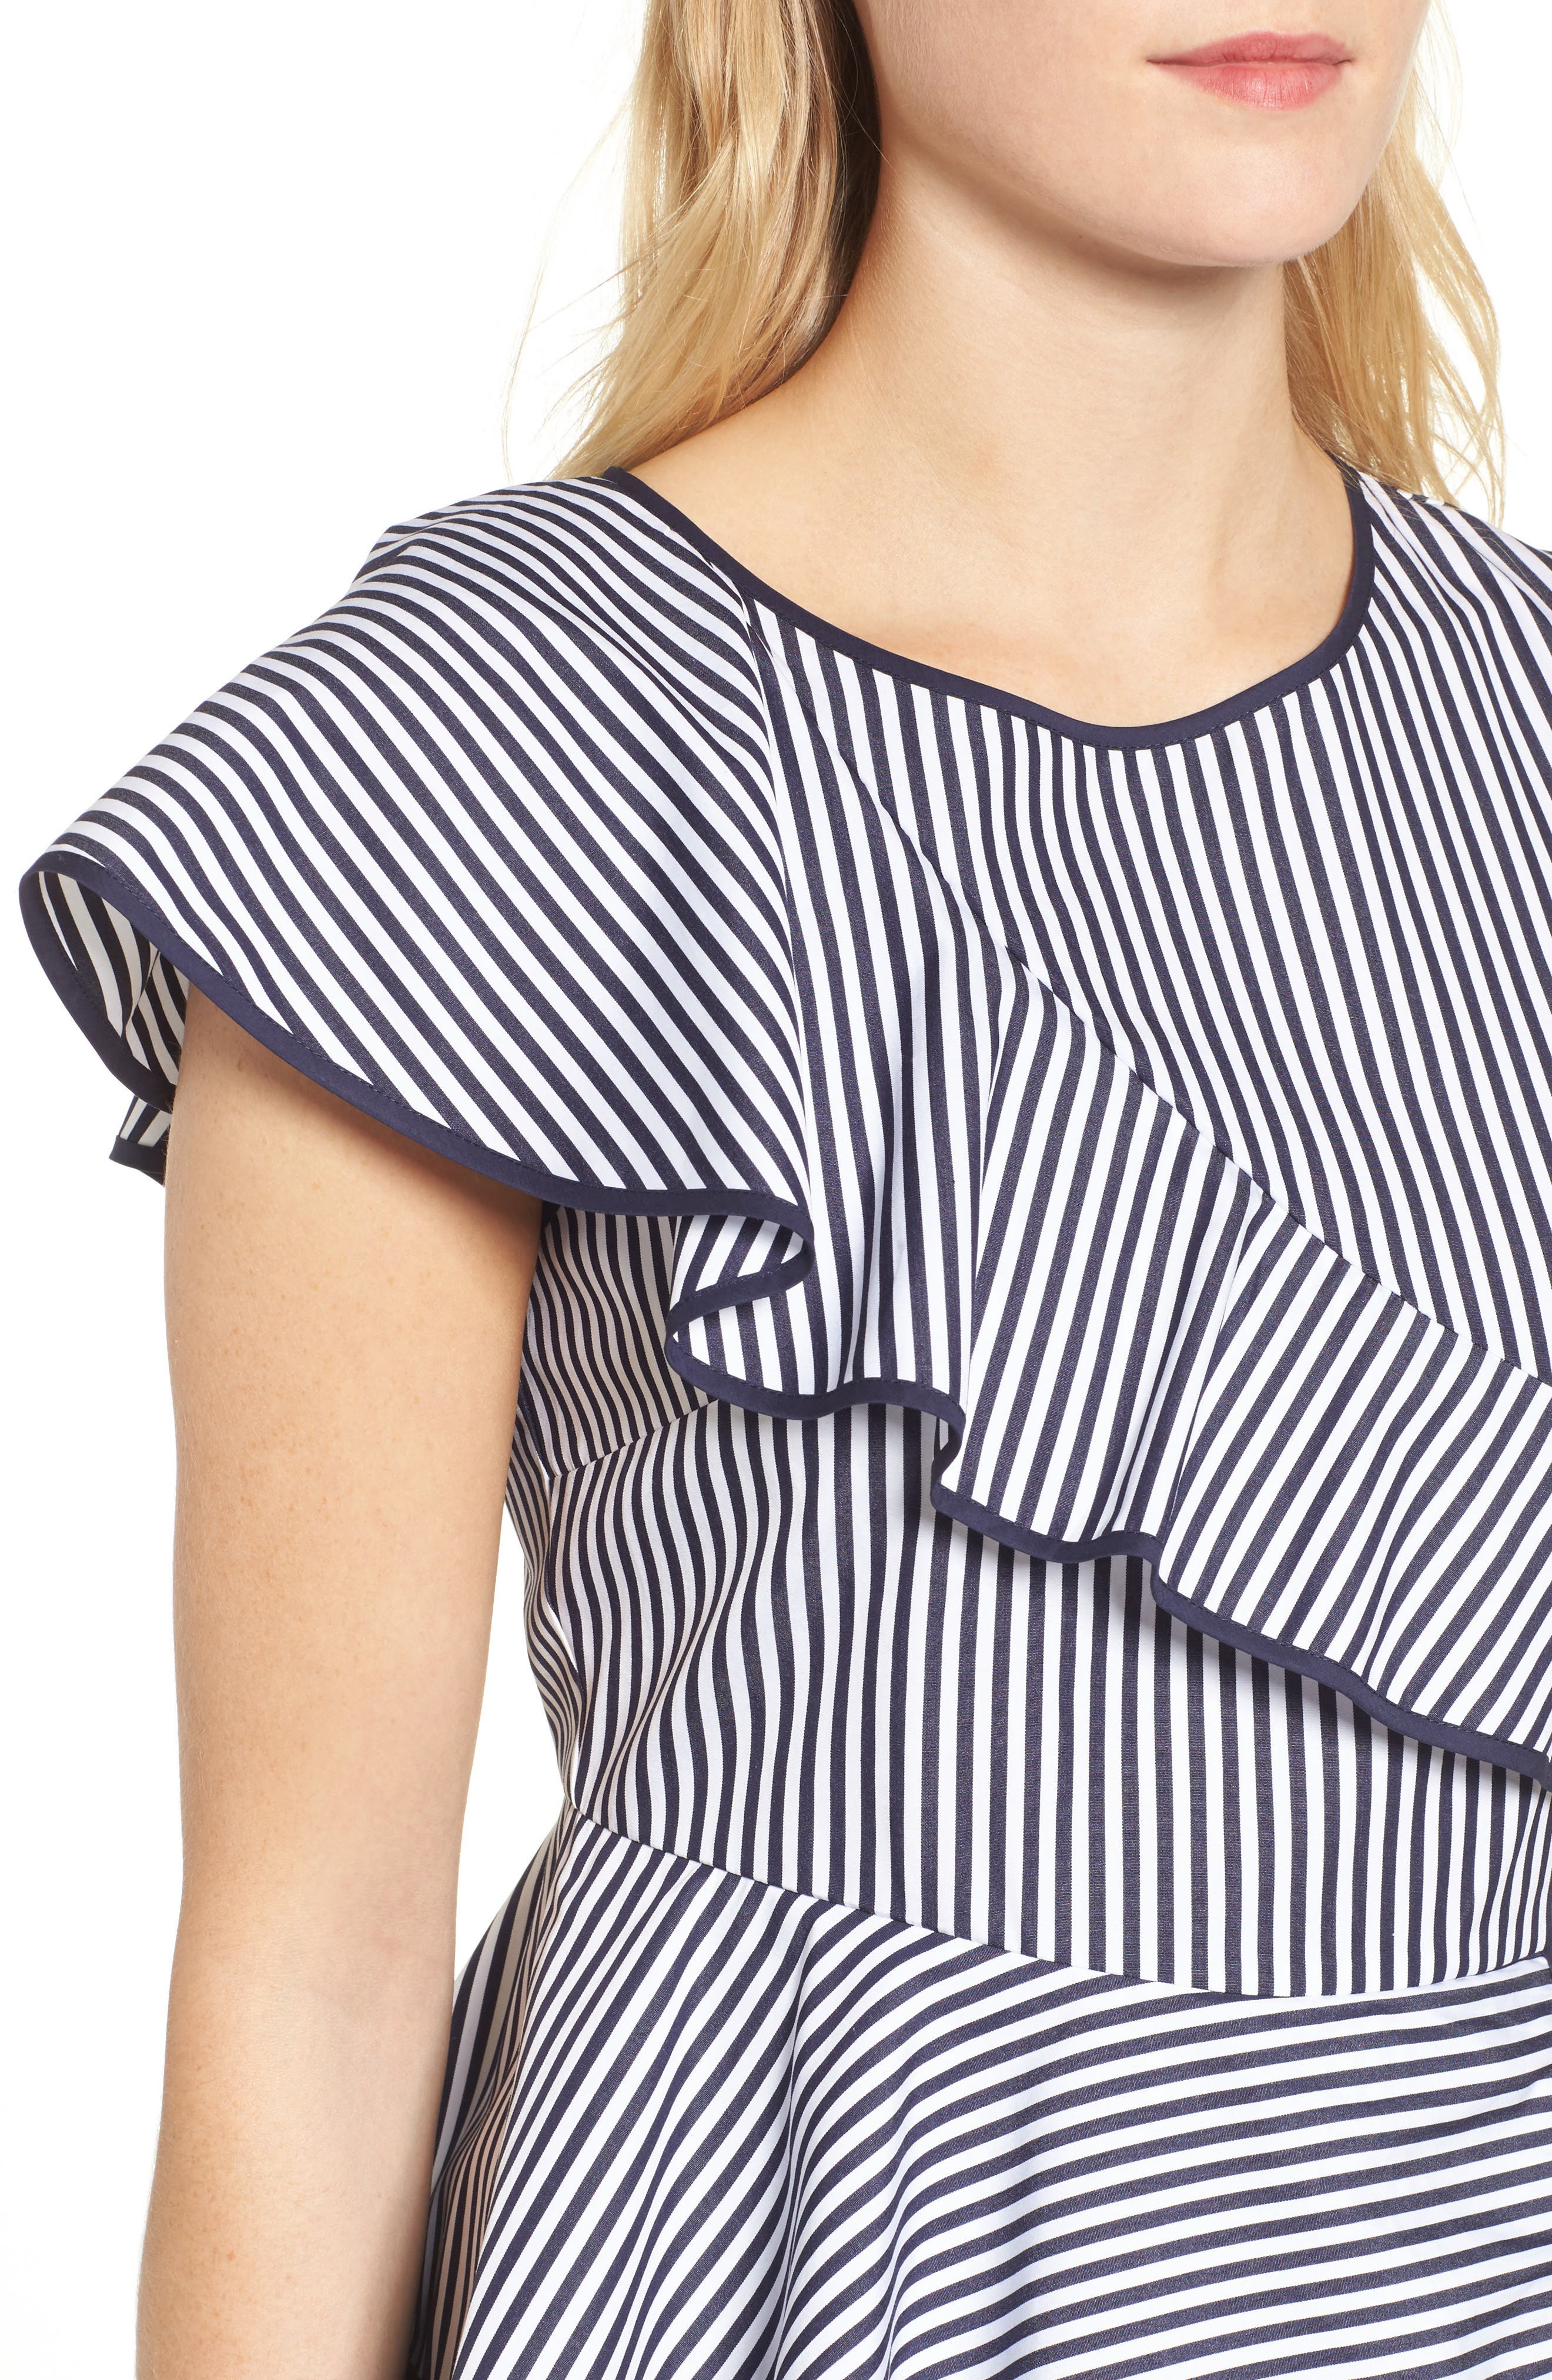 Carly Ruffle Top,                             Alternate thumbnail 4, color,                             479